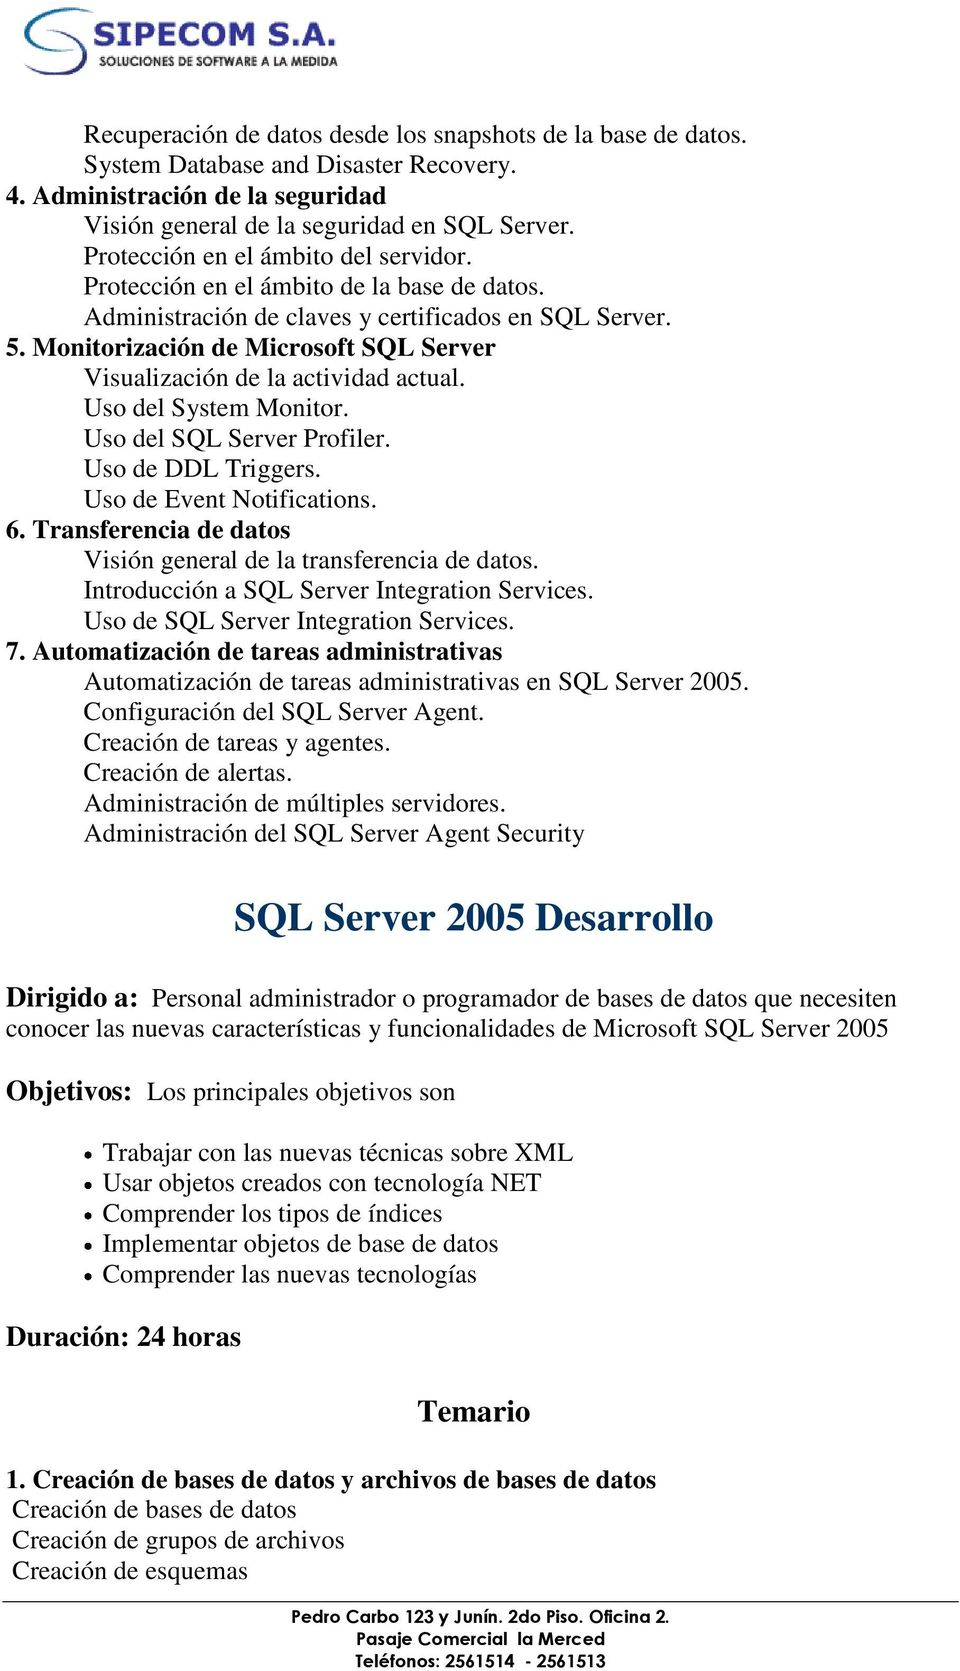 Monitorización de Microsoft SQL Server Visualización de la actividad actual. Uso del System Monitor. Uso del SQL Server Profiler. Uso de DDL Triggers. Uso de Event Notifications. 6.